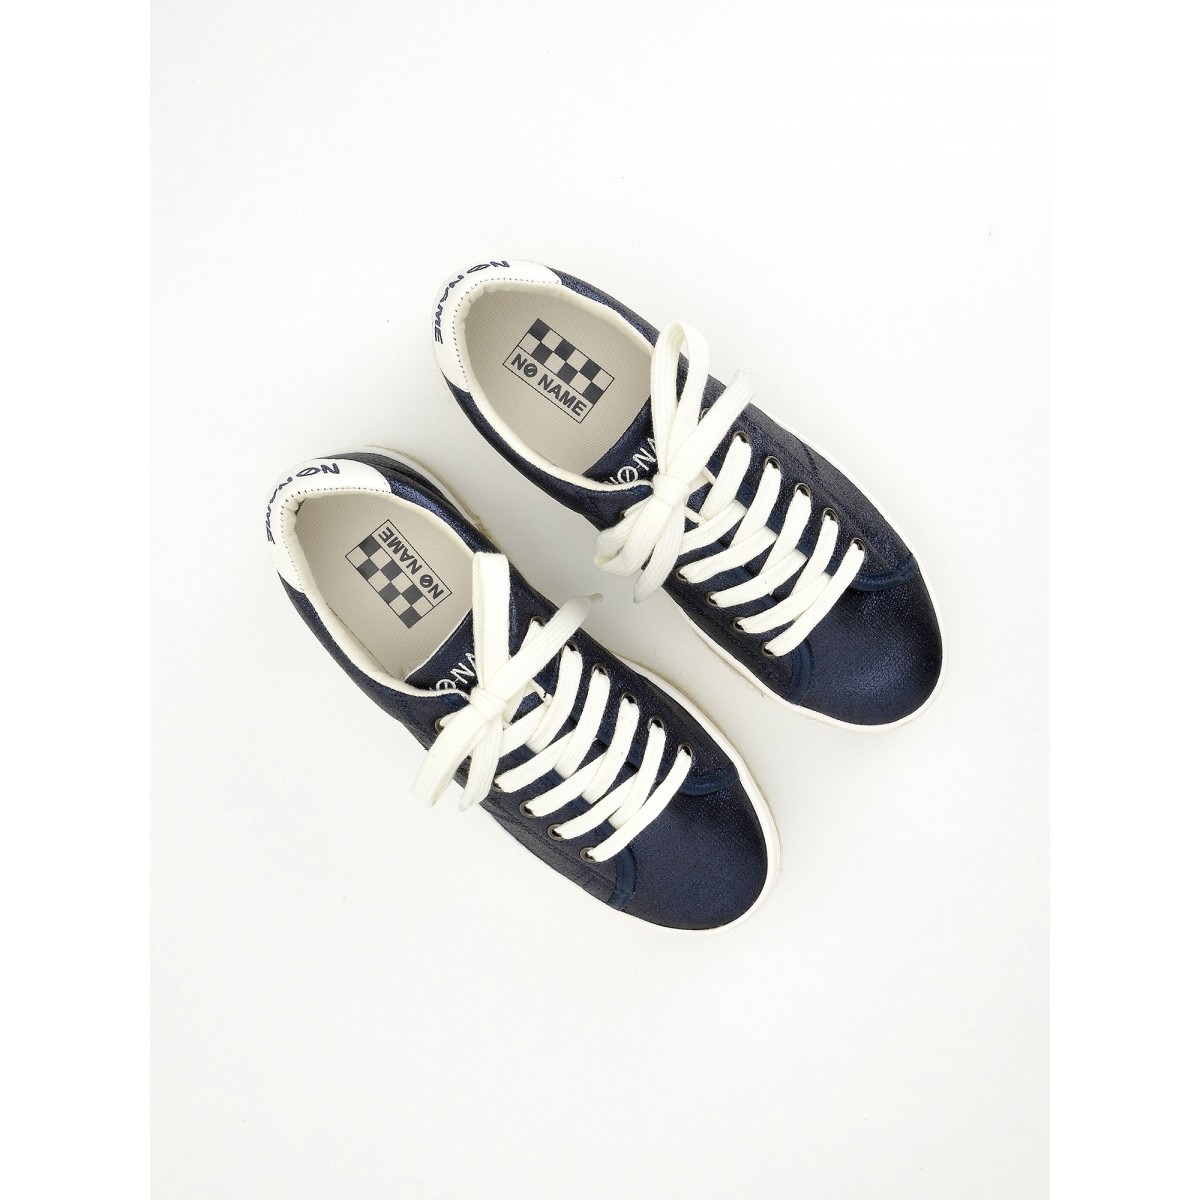 No Name Malibu Sneaker - Irun - Navy